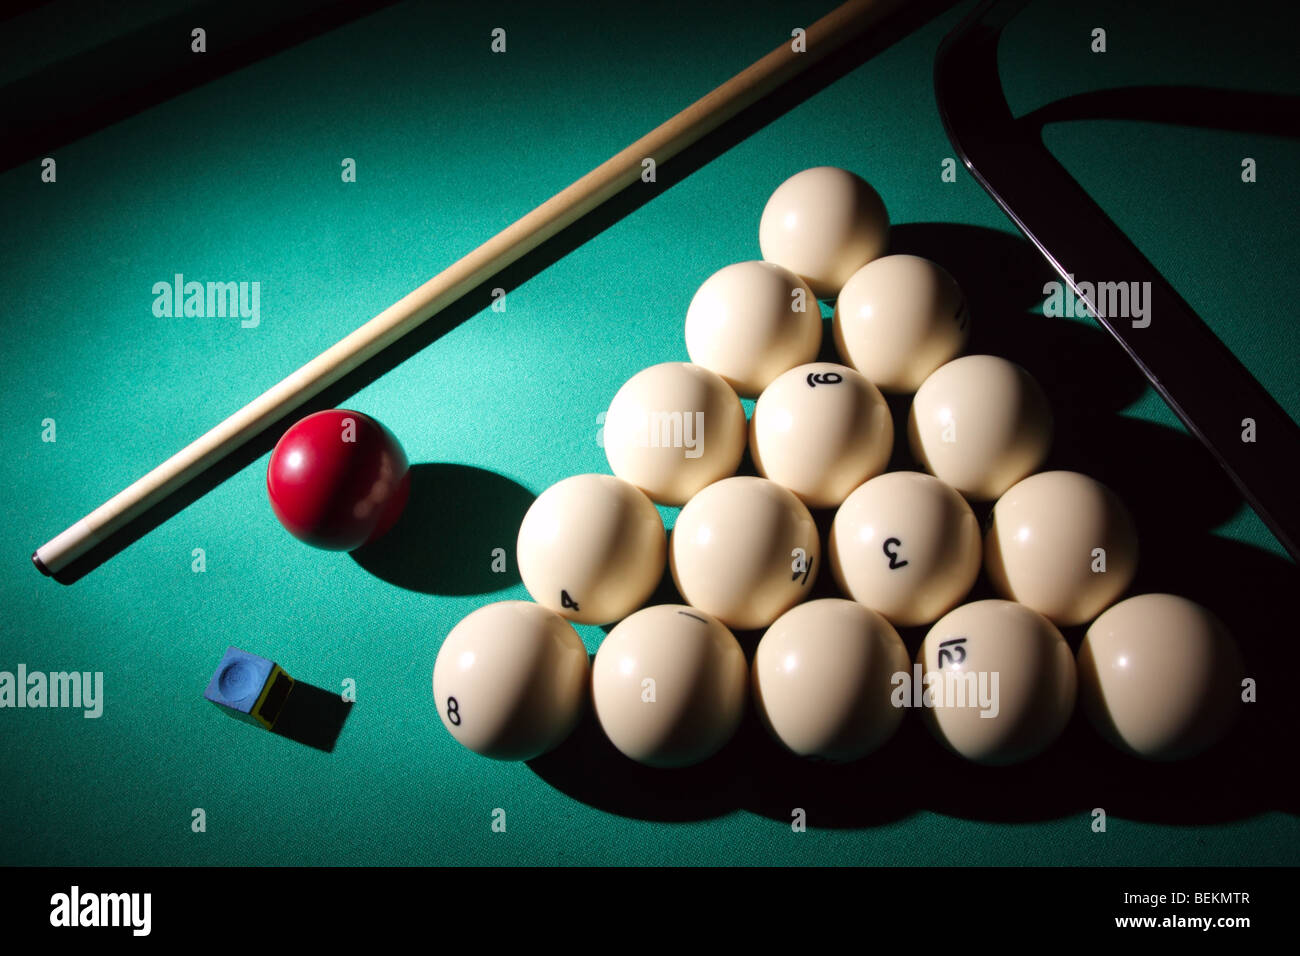 Pool balls on light beam. Balls pyramid with cue on a pool table. Stock Photo